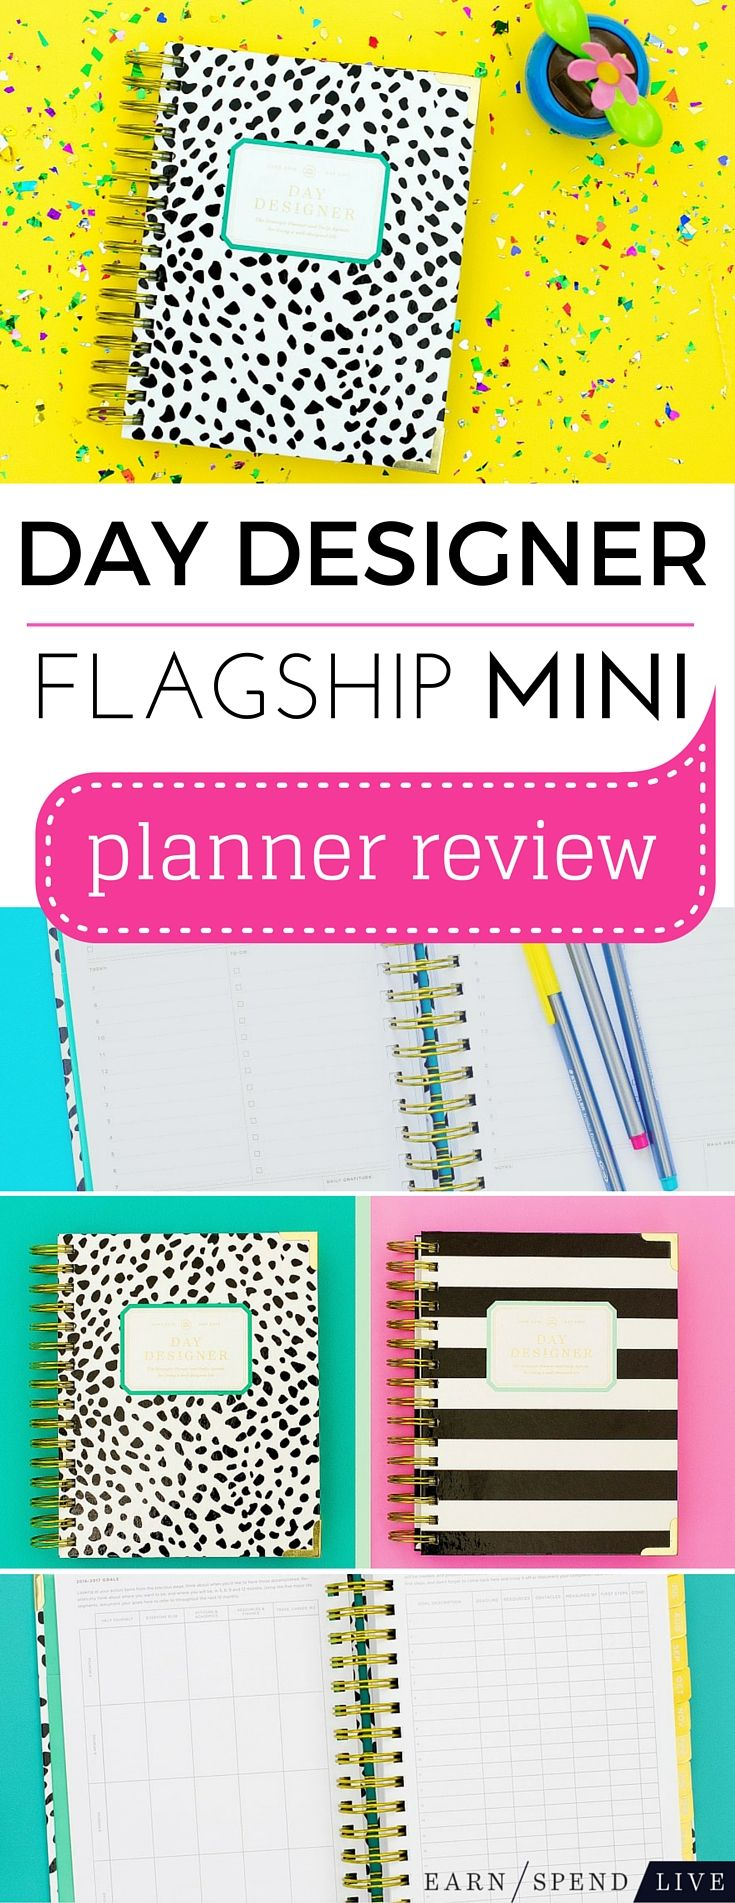 Day Designer launched its first mini Flagship planner in 2016 and let me tell ya — it is major. It's the same quality tool you expect a Day Designer planner but the few less inches doesn't detract from its space, wisdom, or beauty. Here's a rundown of exactly what you get with a Flagship Day Designer Mini >